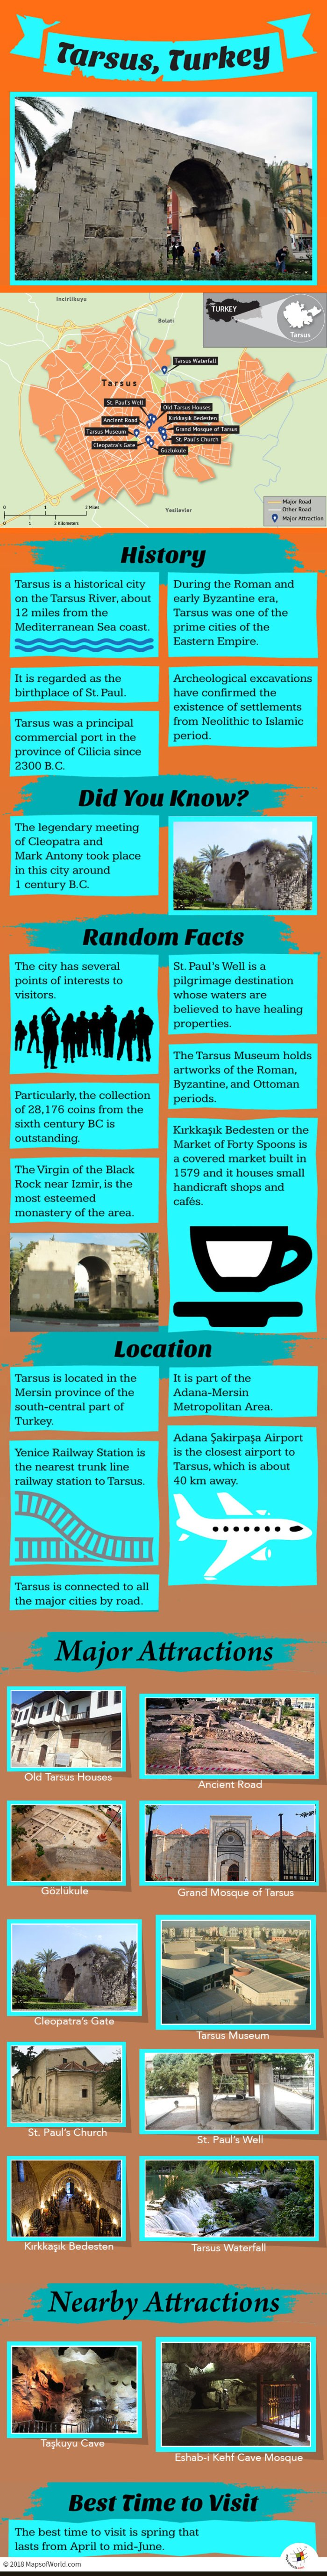 Infographic Depicting Tarsus Tourist Attractions